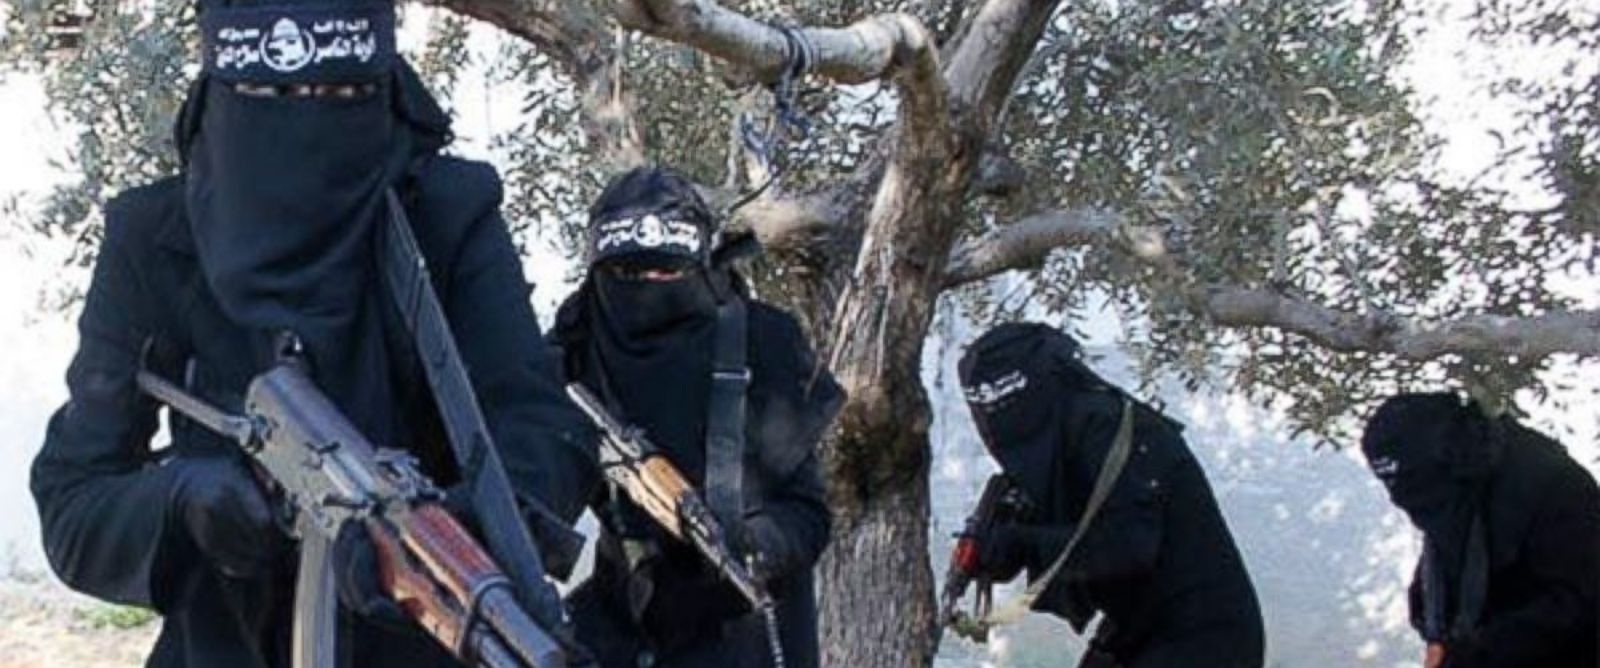 PHOTO: Members of the al-Khansaa Brigade, ISIS all-female unit operating in Raqqa, Syria.